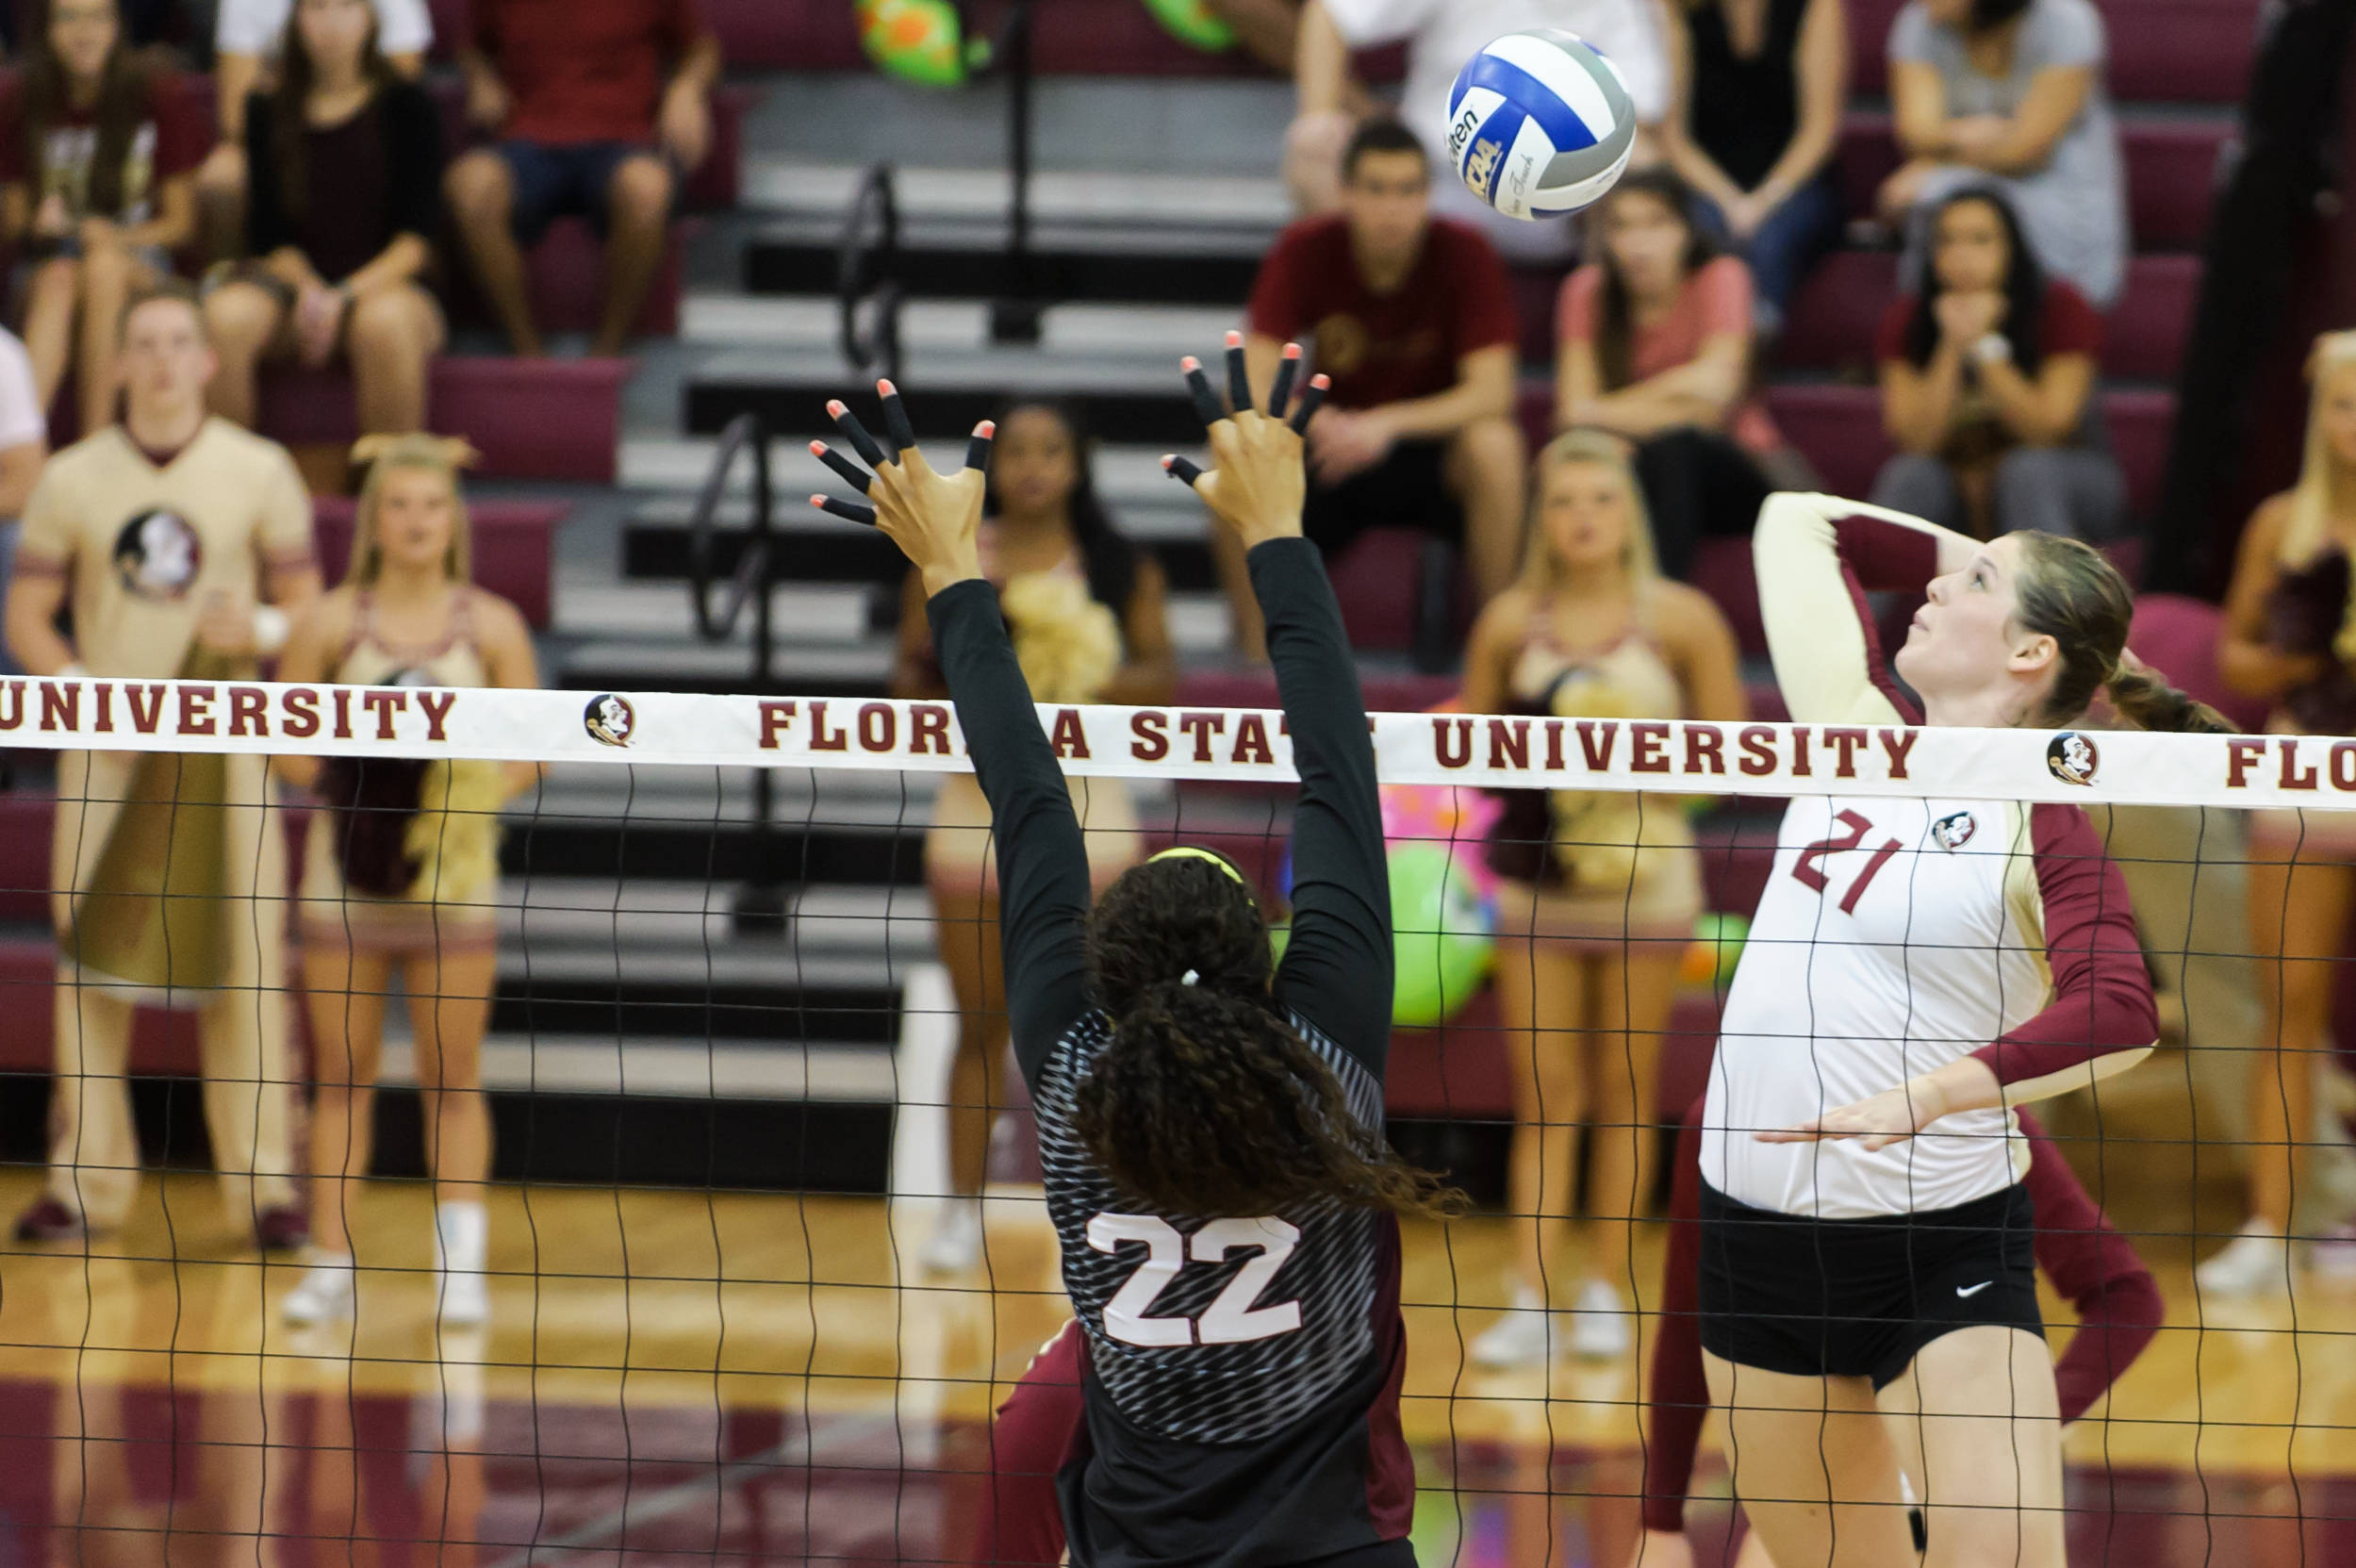 Texas A&M at Florida State